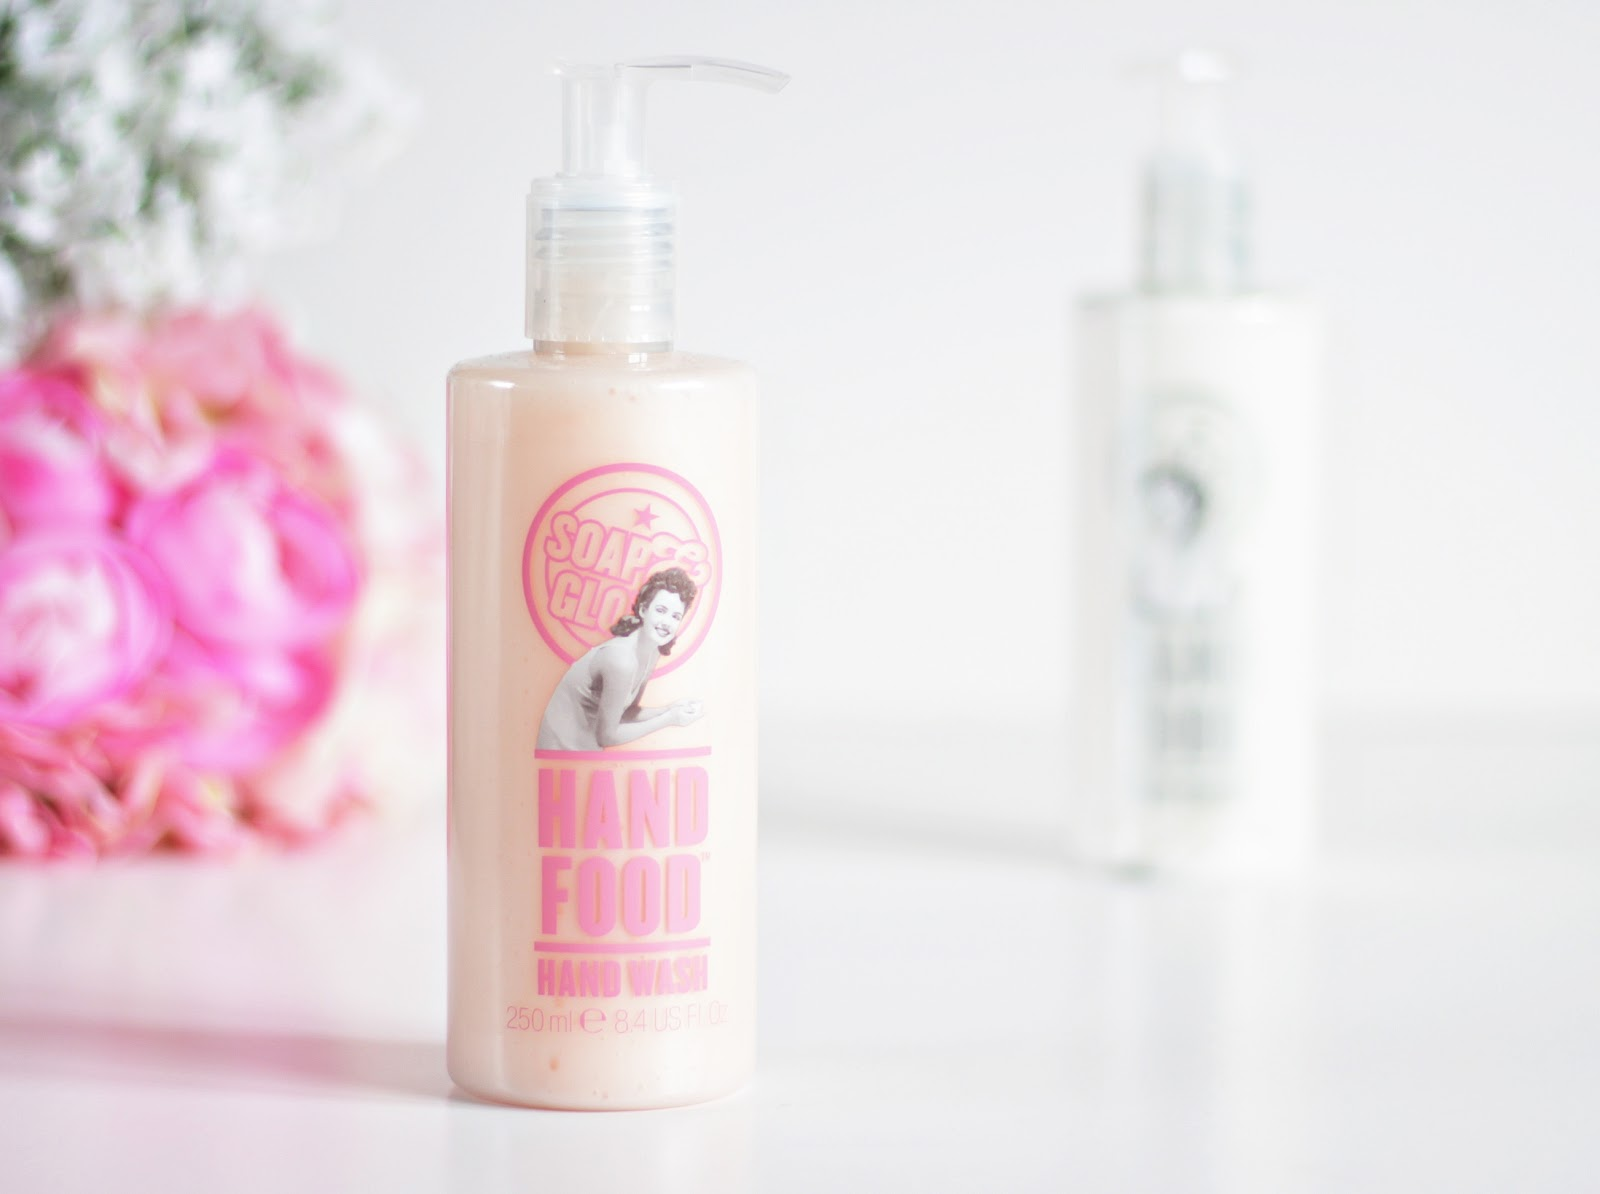 Soap & Glory Hand Food Hand Wash